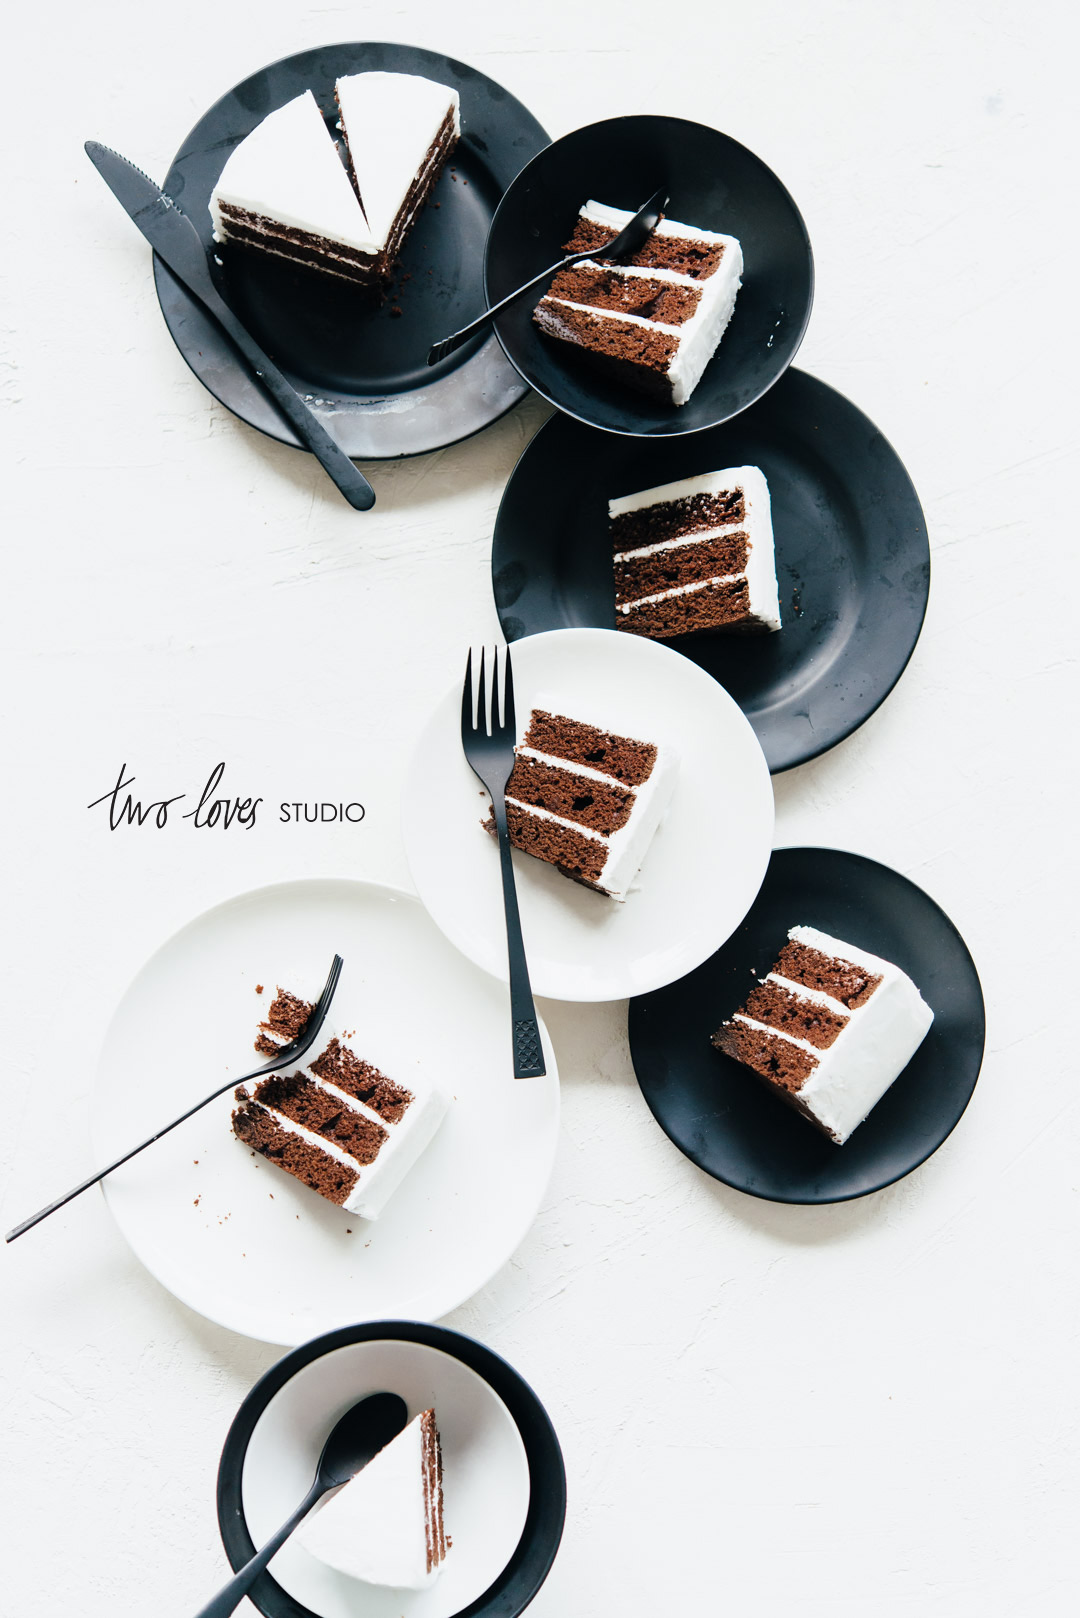 Two-Loves-Studio-Overcome a Creative Block in Food Photography